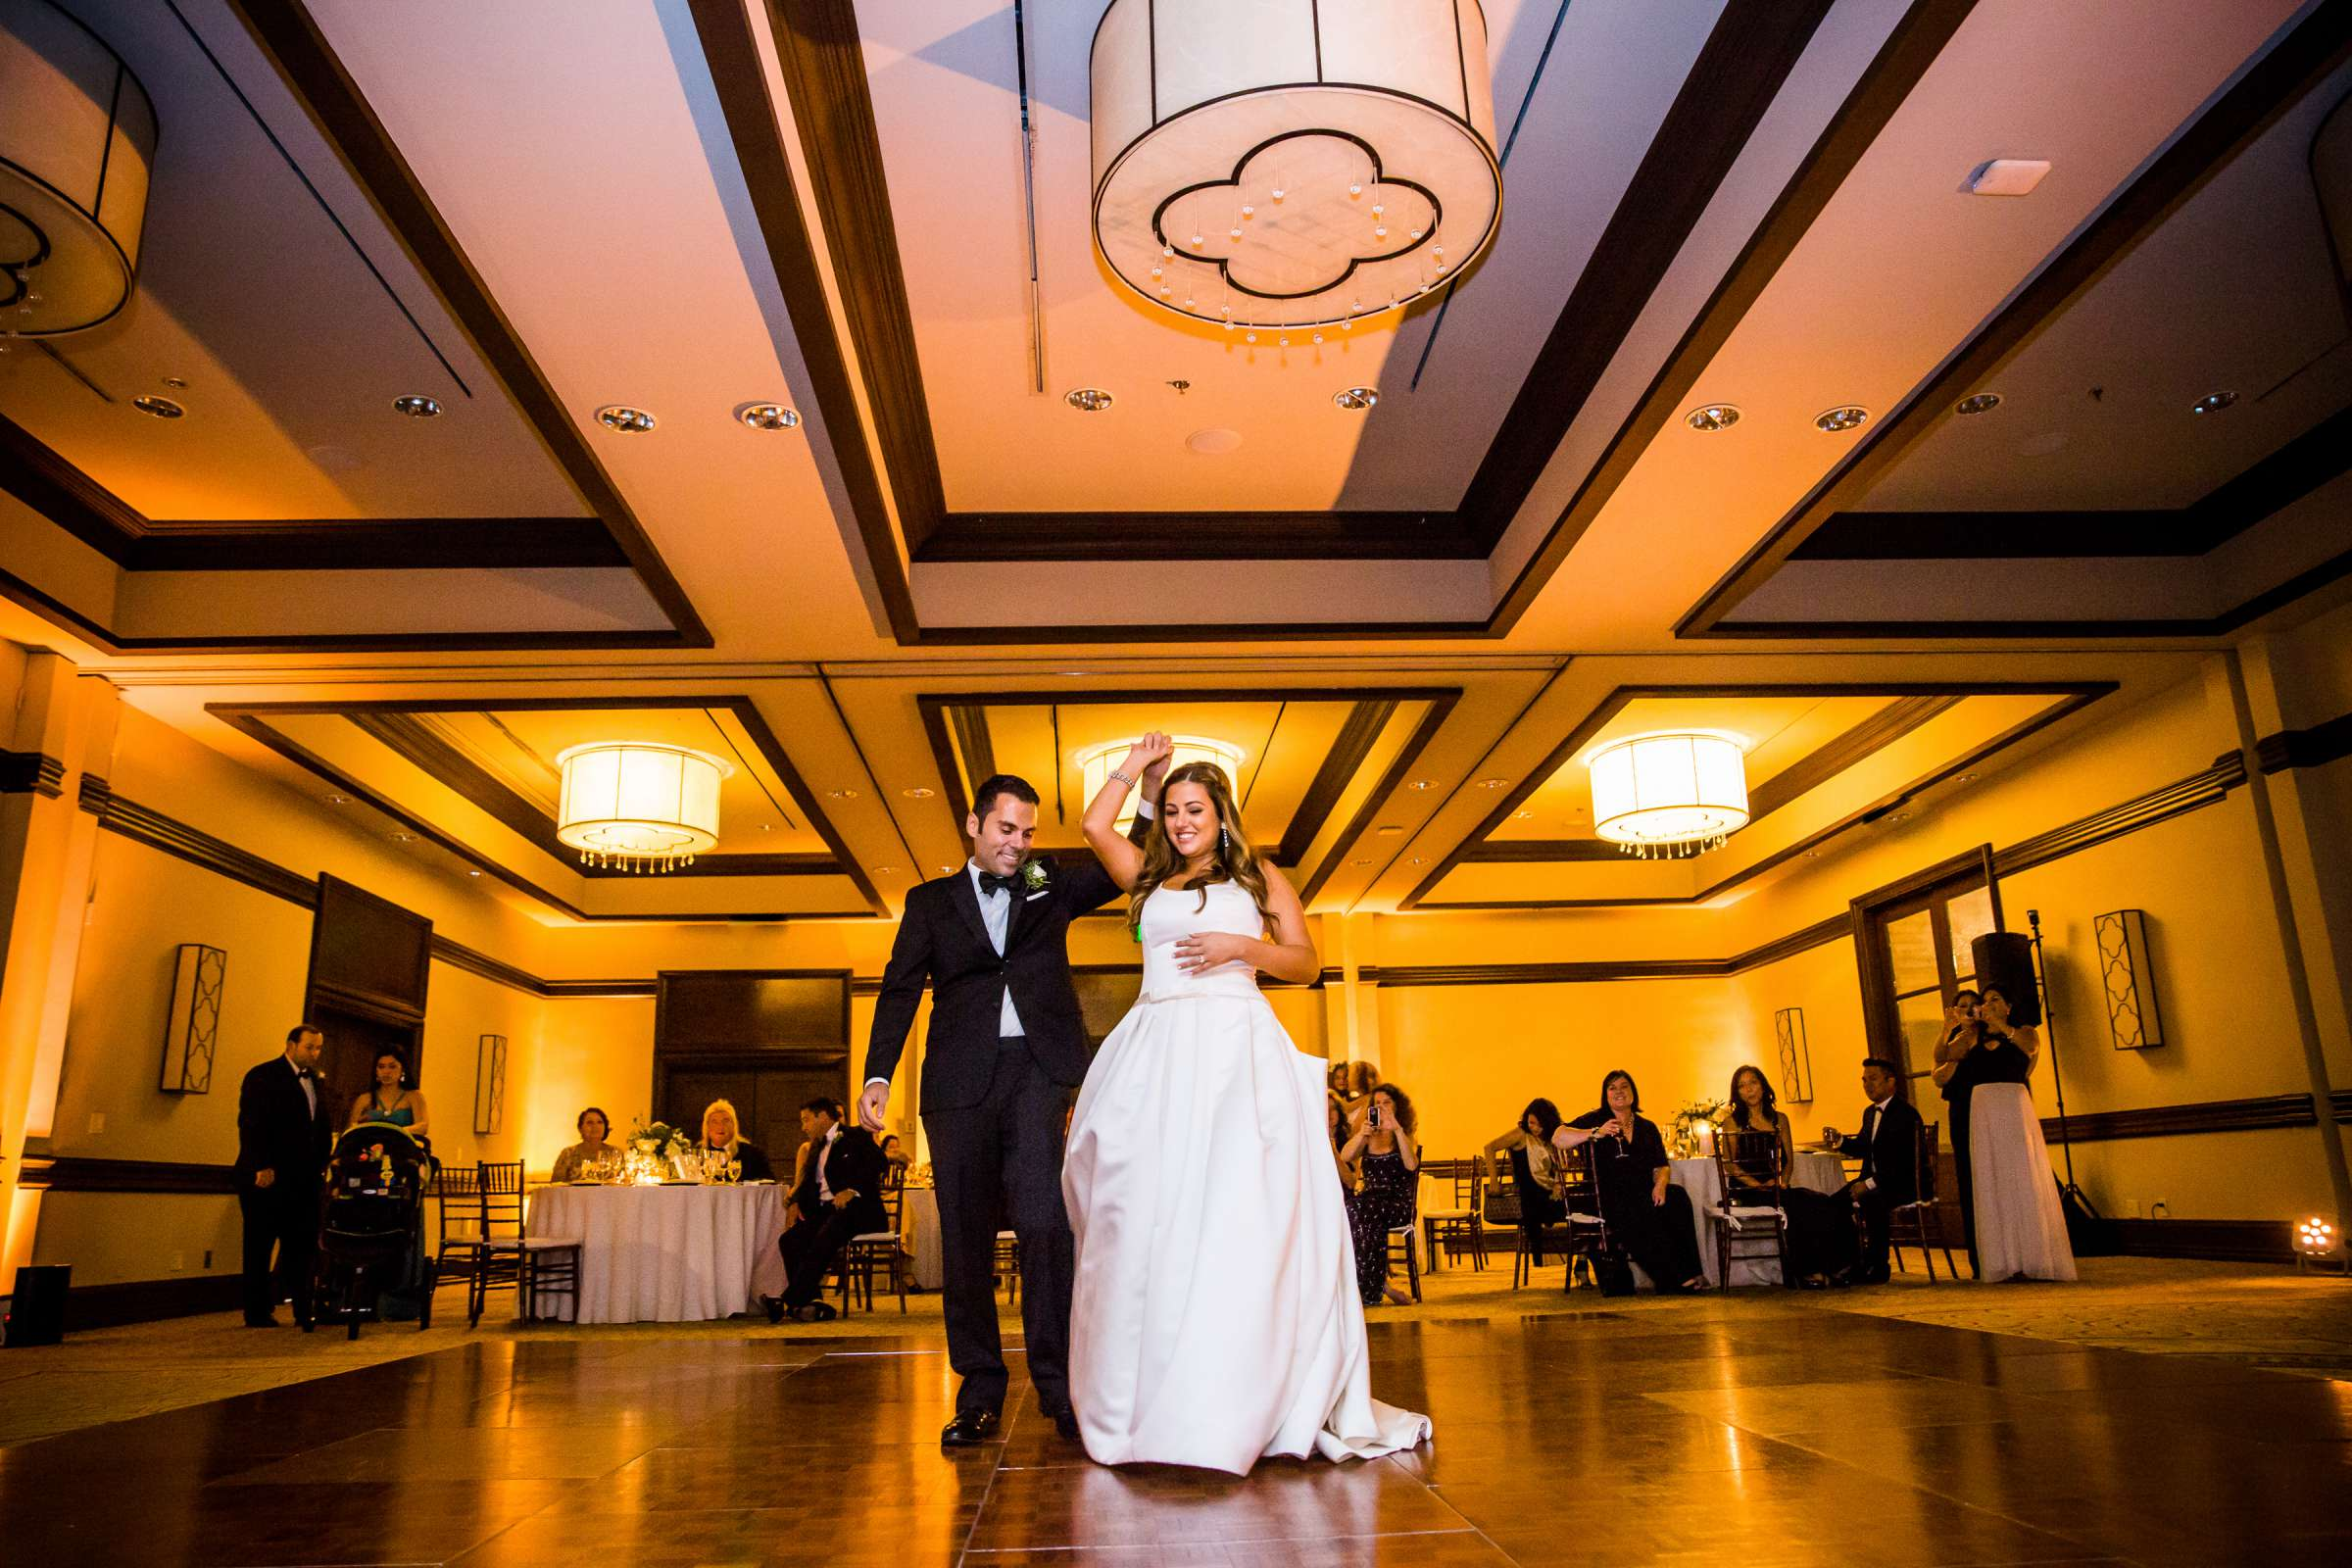 Rancho Bernardo Inn Wedding coordinated by Très Chic Events, Stefania and Nicholas Wedding Photo #62 by True Photography